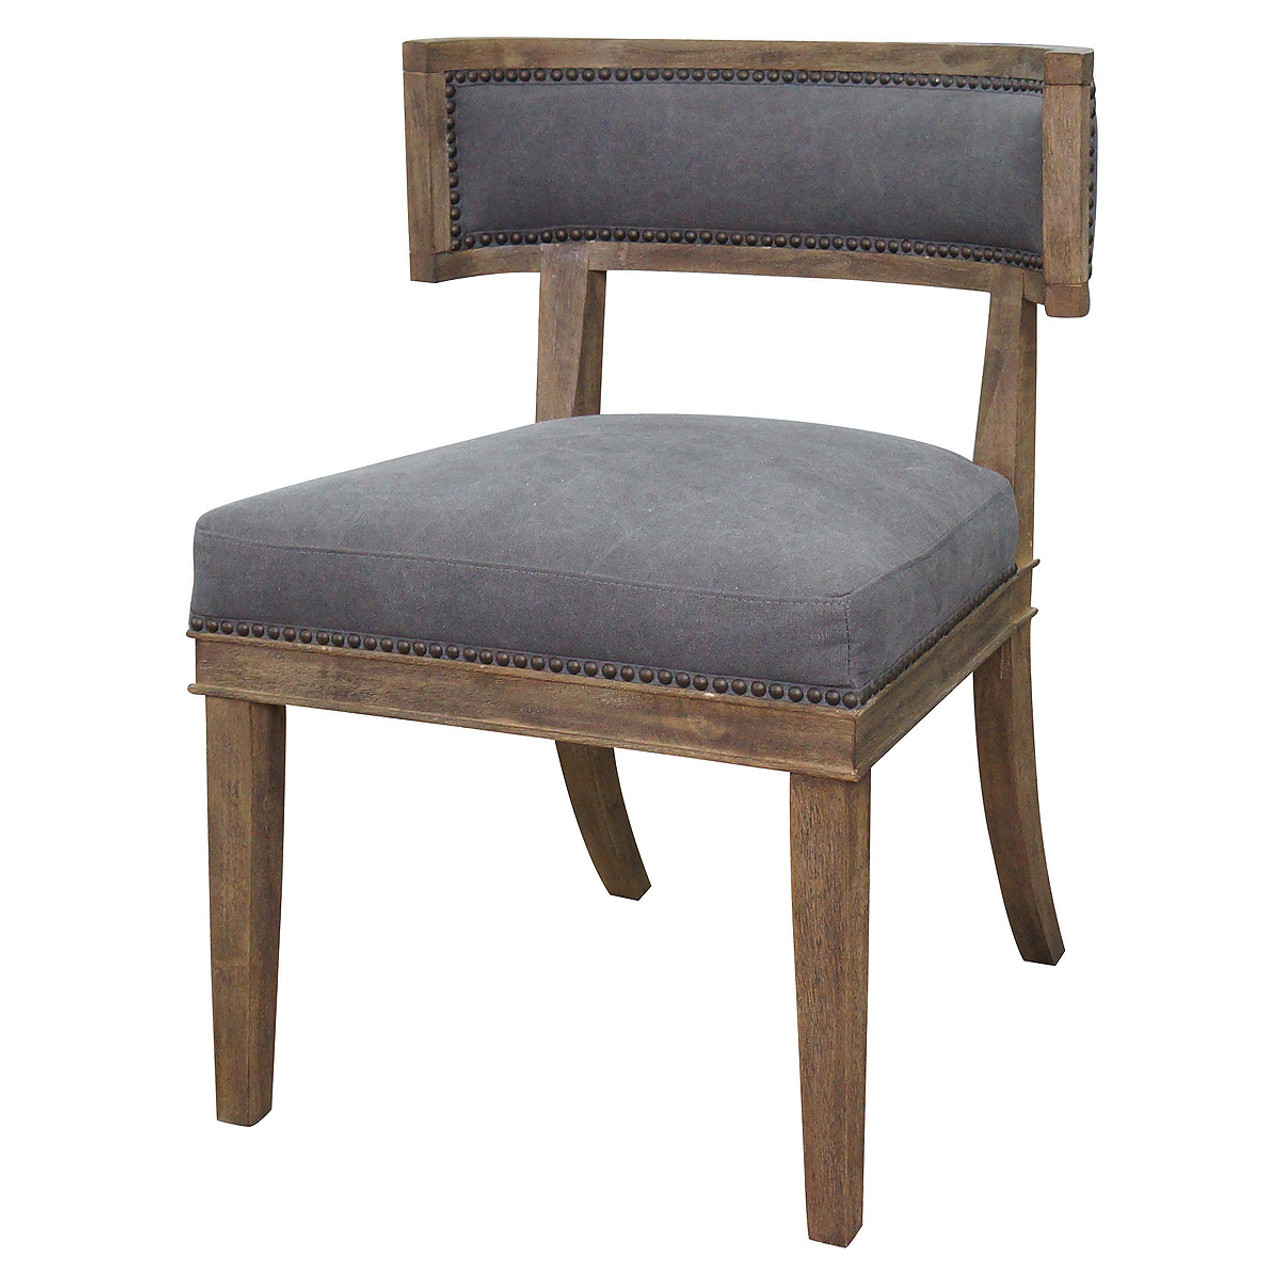 Brilliant Carter Upholstered Curved Dining Chair Bralicious Painted Fabric Chair Ideas Braliciousco